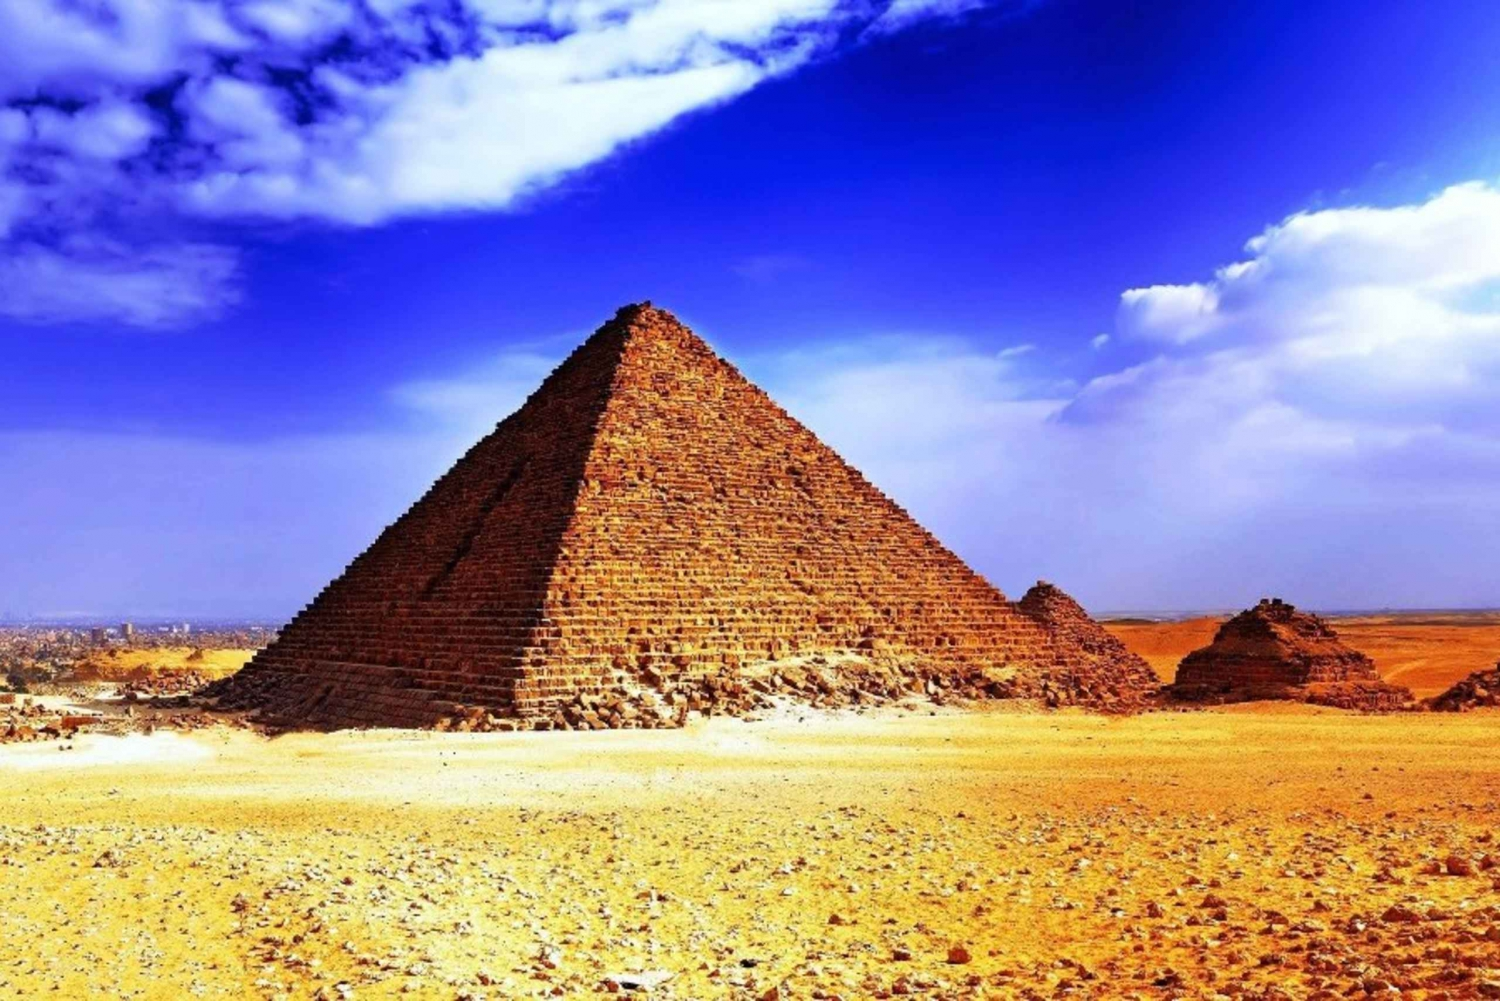 From Hurghada: Cairo 2-Day Tour incl. Flights and Hotel